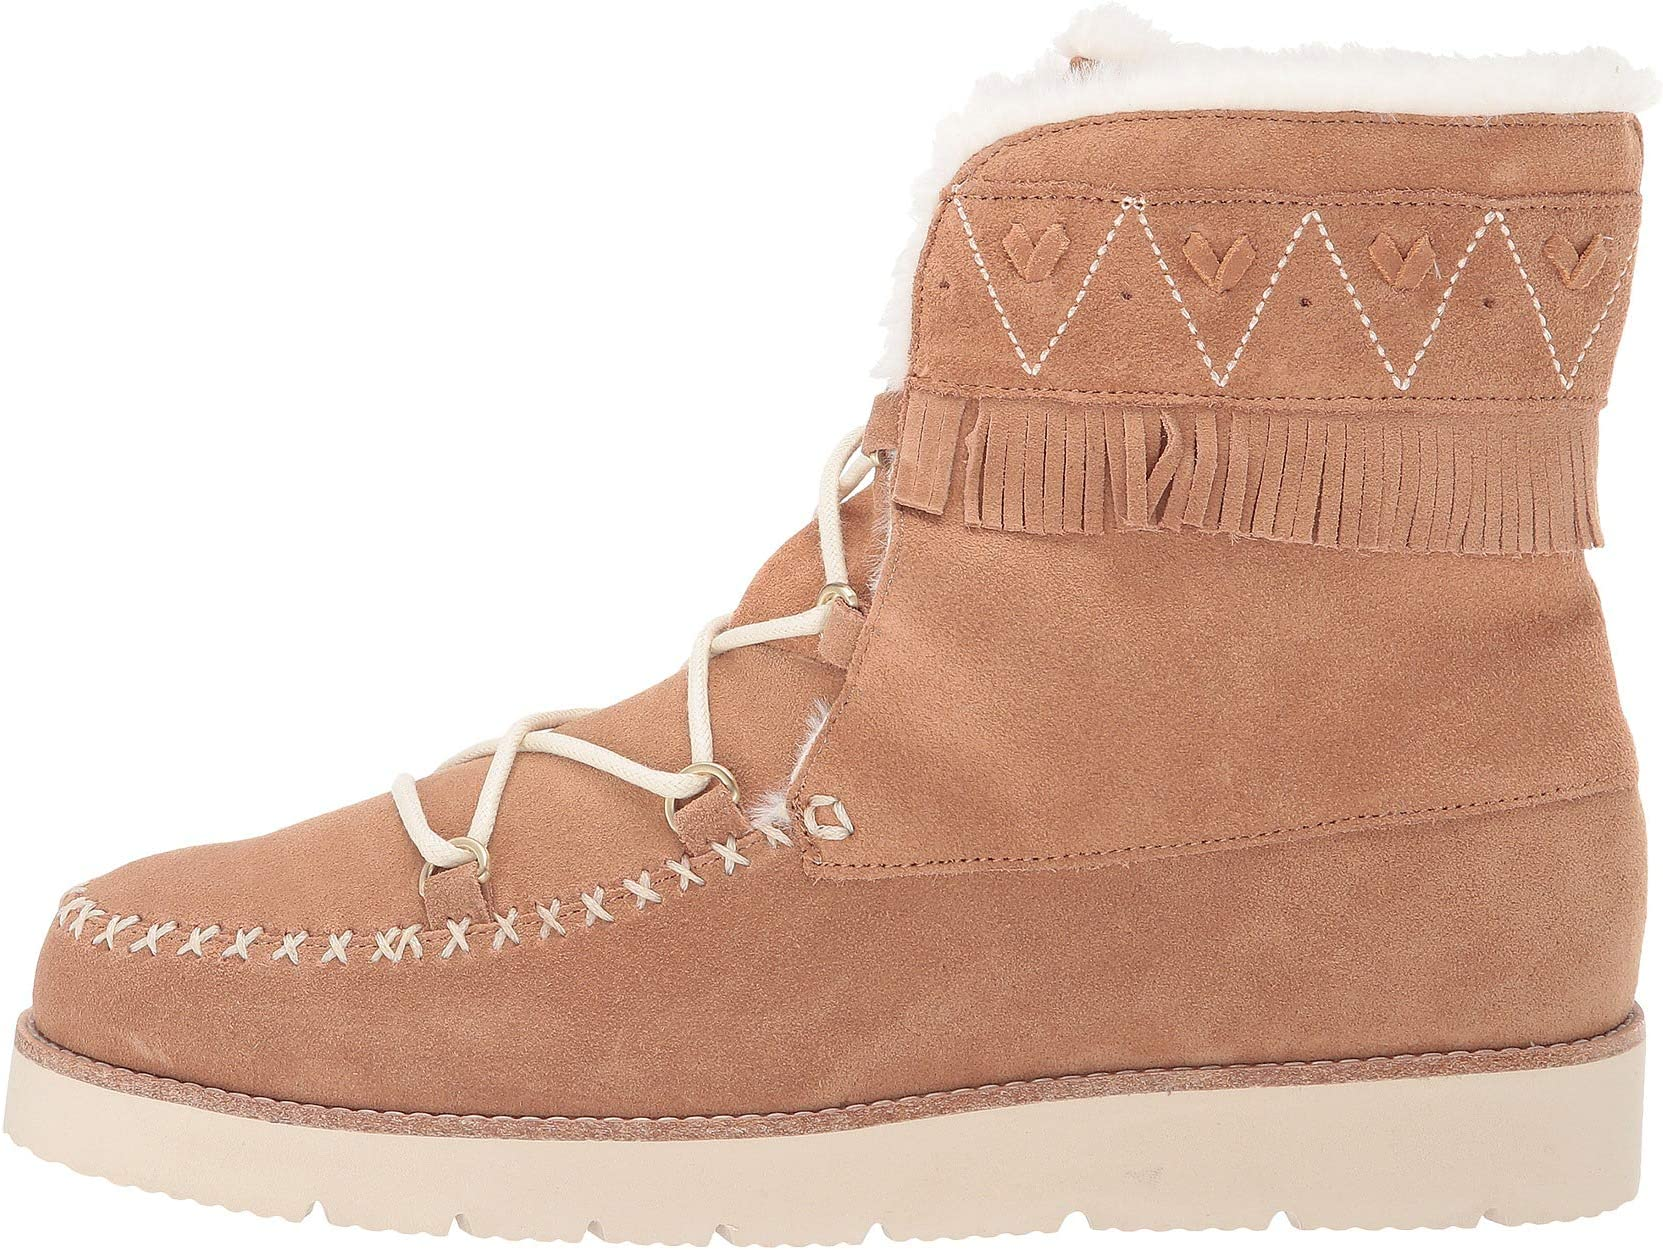 Jack Rogers Vera Suede Lace-Up Boot | Women's shoes | 2020 Newest